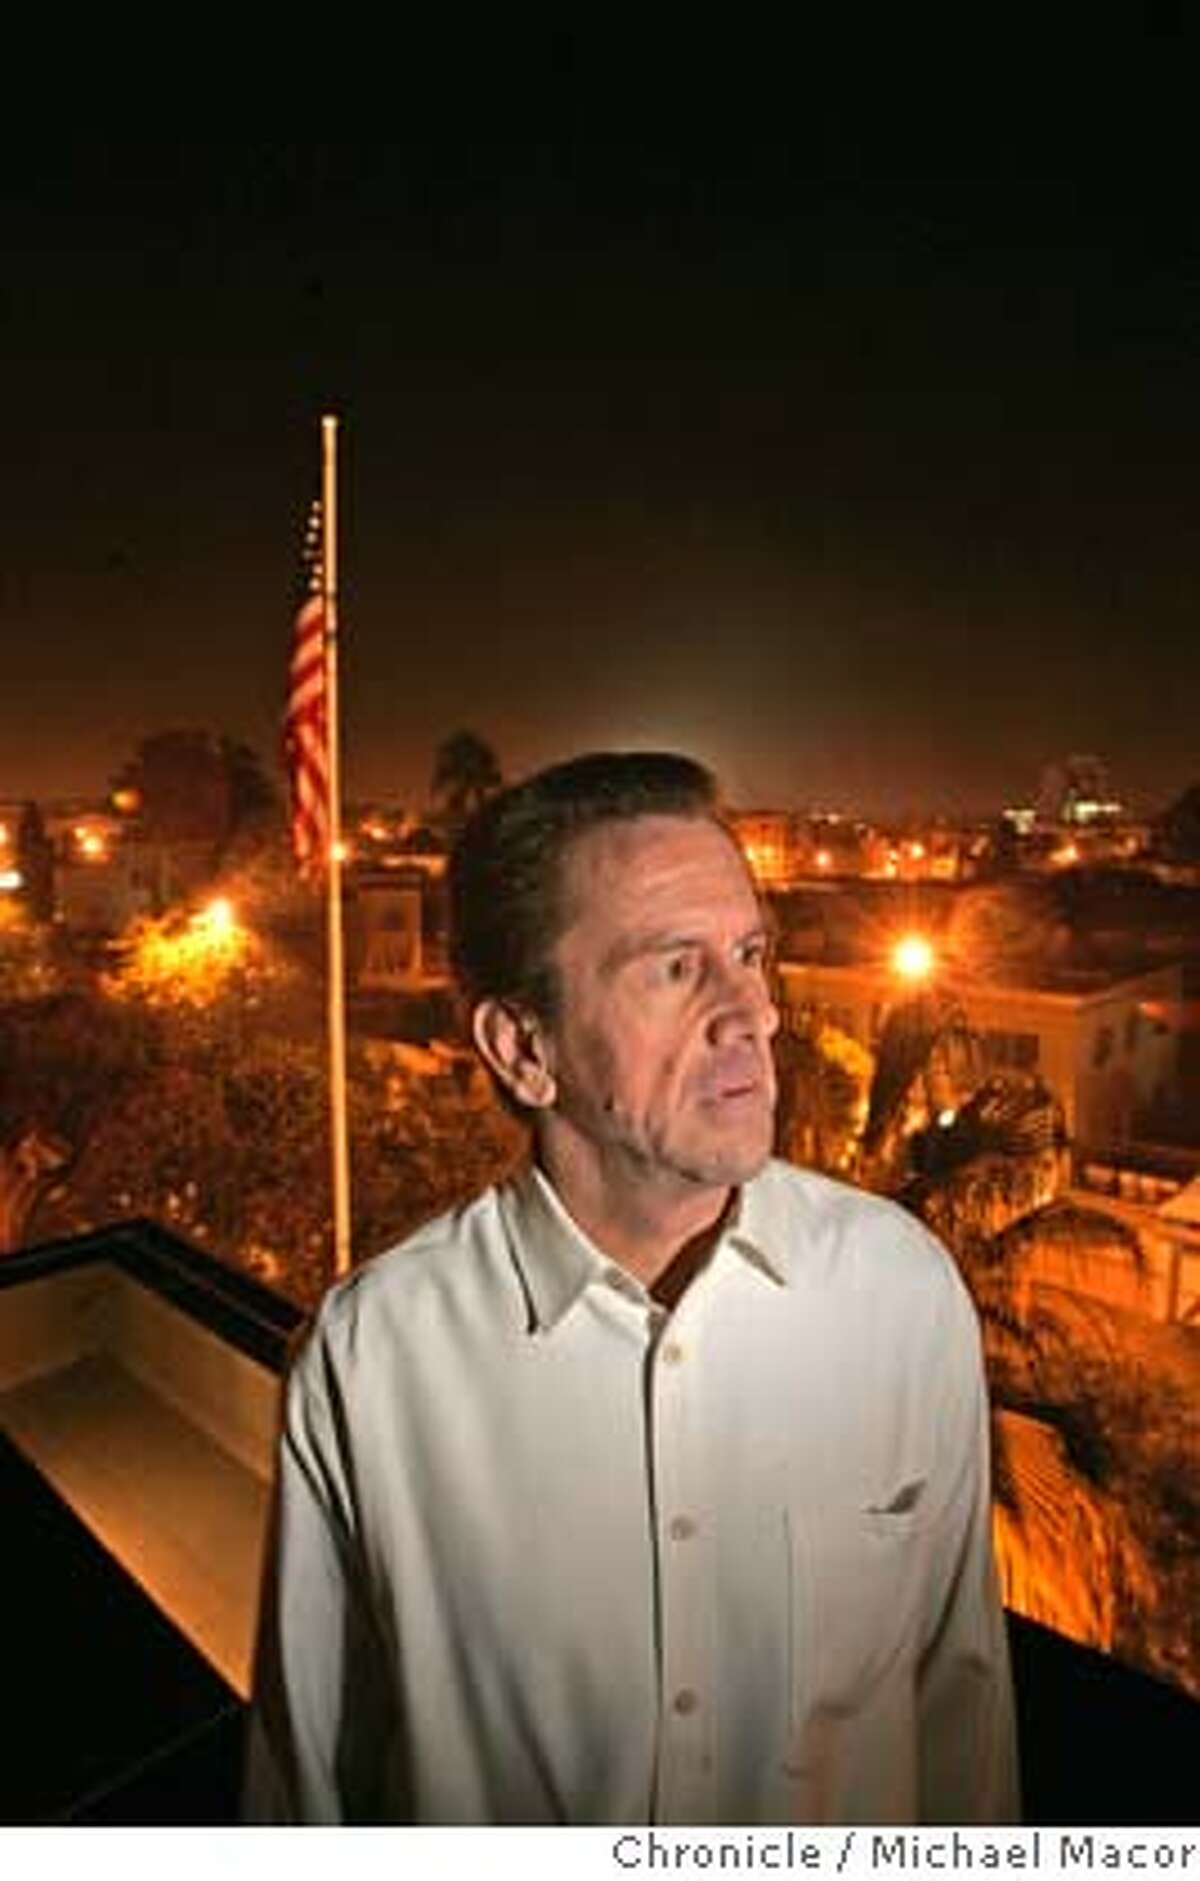 The Ambassador on the roof of his residence, overlooking downtown Rabat. The US Ambassador in Morocco, Thomas Riley, hosts a holiday party for Embassy workers a week before Christmas. Ambassador's residence in Rabat. 12/18/04 Rabat, Morocco Michael Macor / San Francisco Chronicle